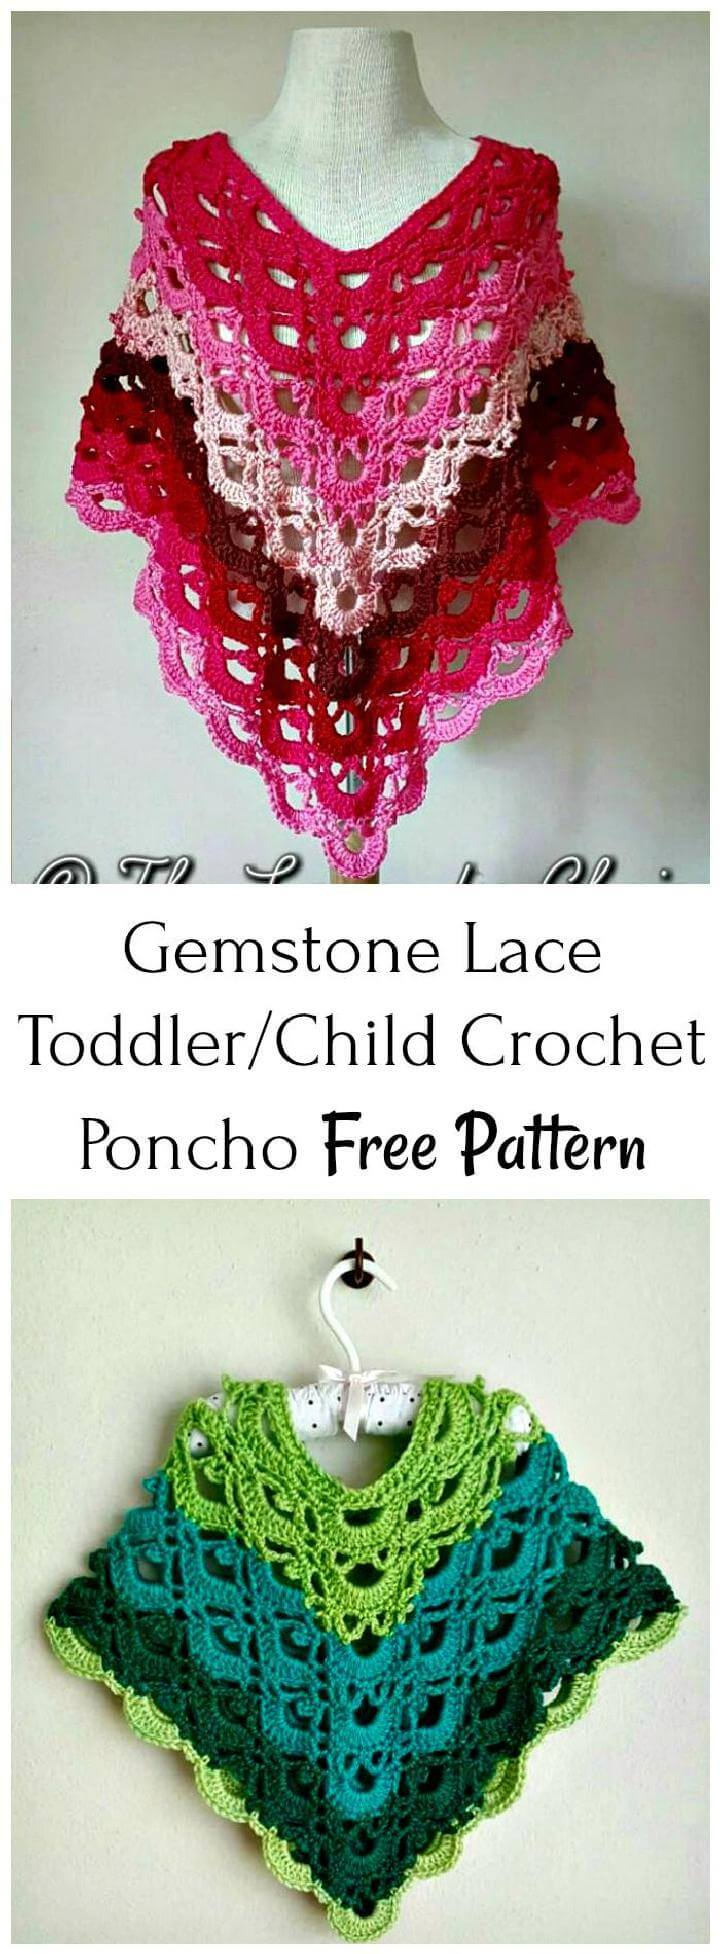 Greenstone Lace toddler or Child Crochet Poncho